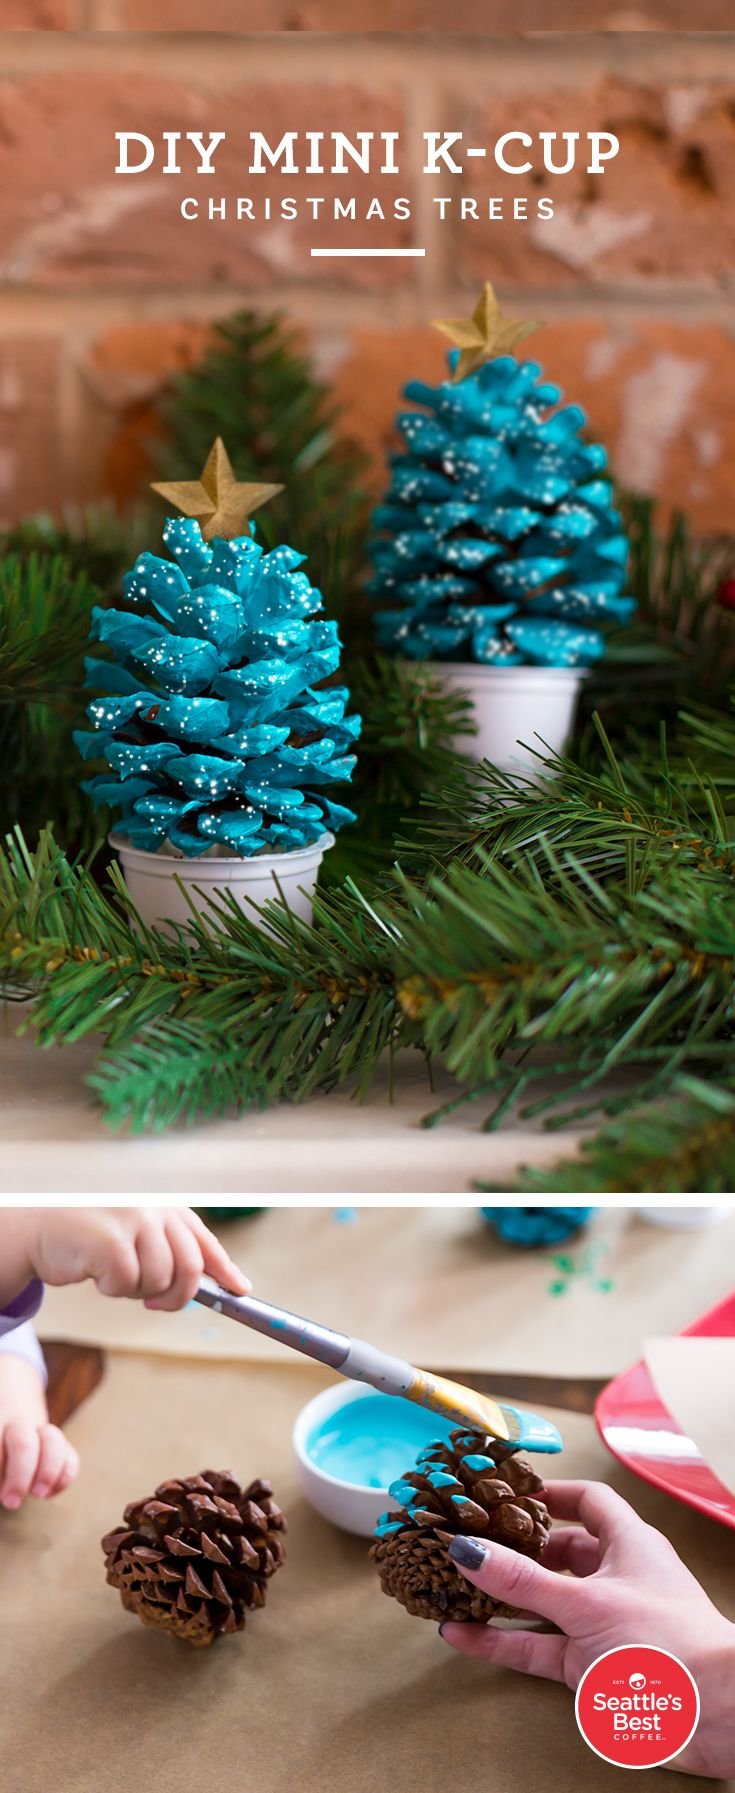 Here's a festive way to reuse your K-Cup pods after enjoying a smooth cup of Seattle's Best Coffee! This is a kid-friendly DIY craft that you can customize any way you would like.